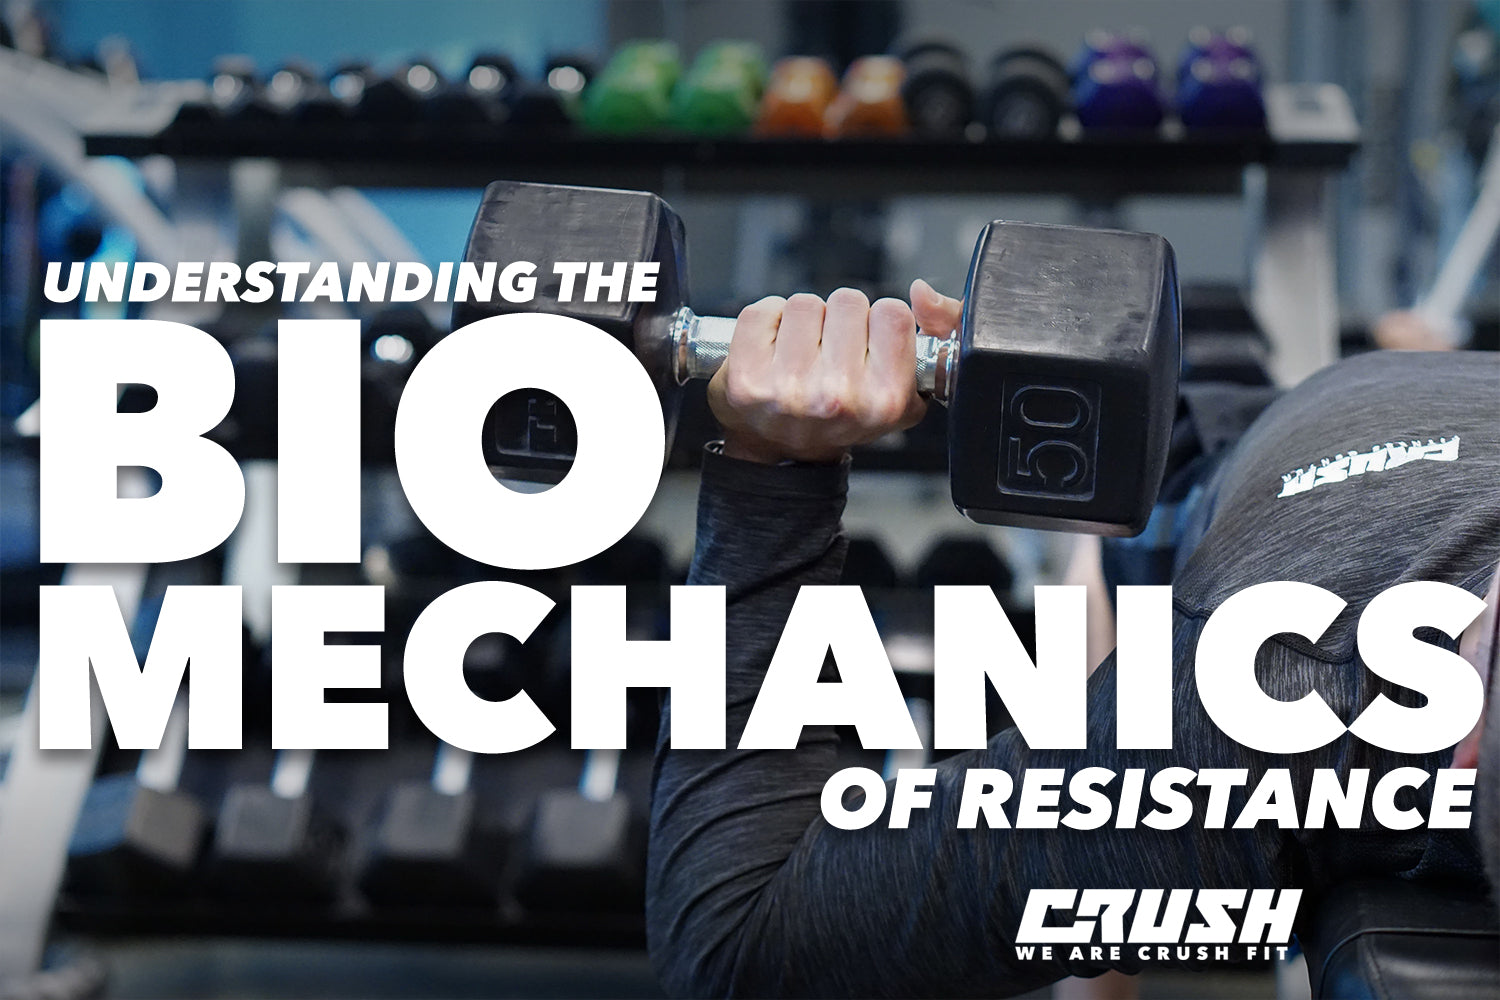 Crush-Fitness-University-BioMechanics-Resistance-Spenser